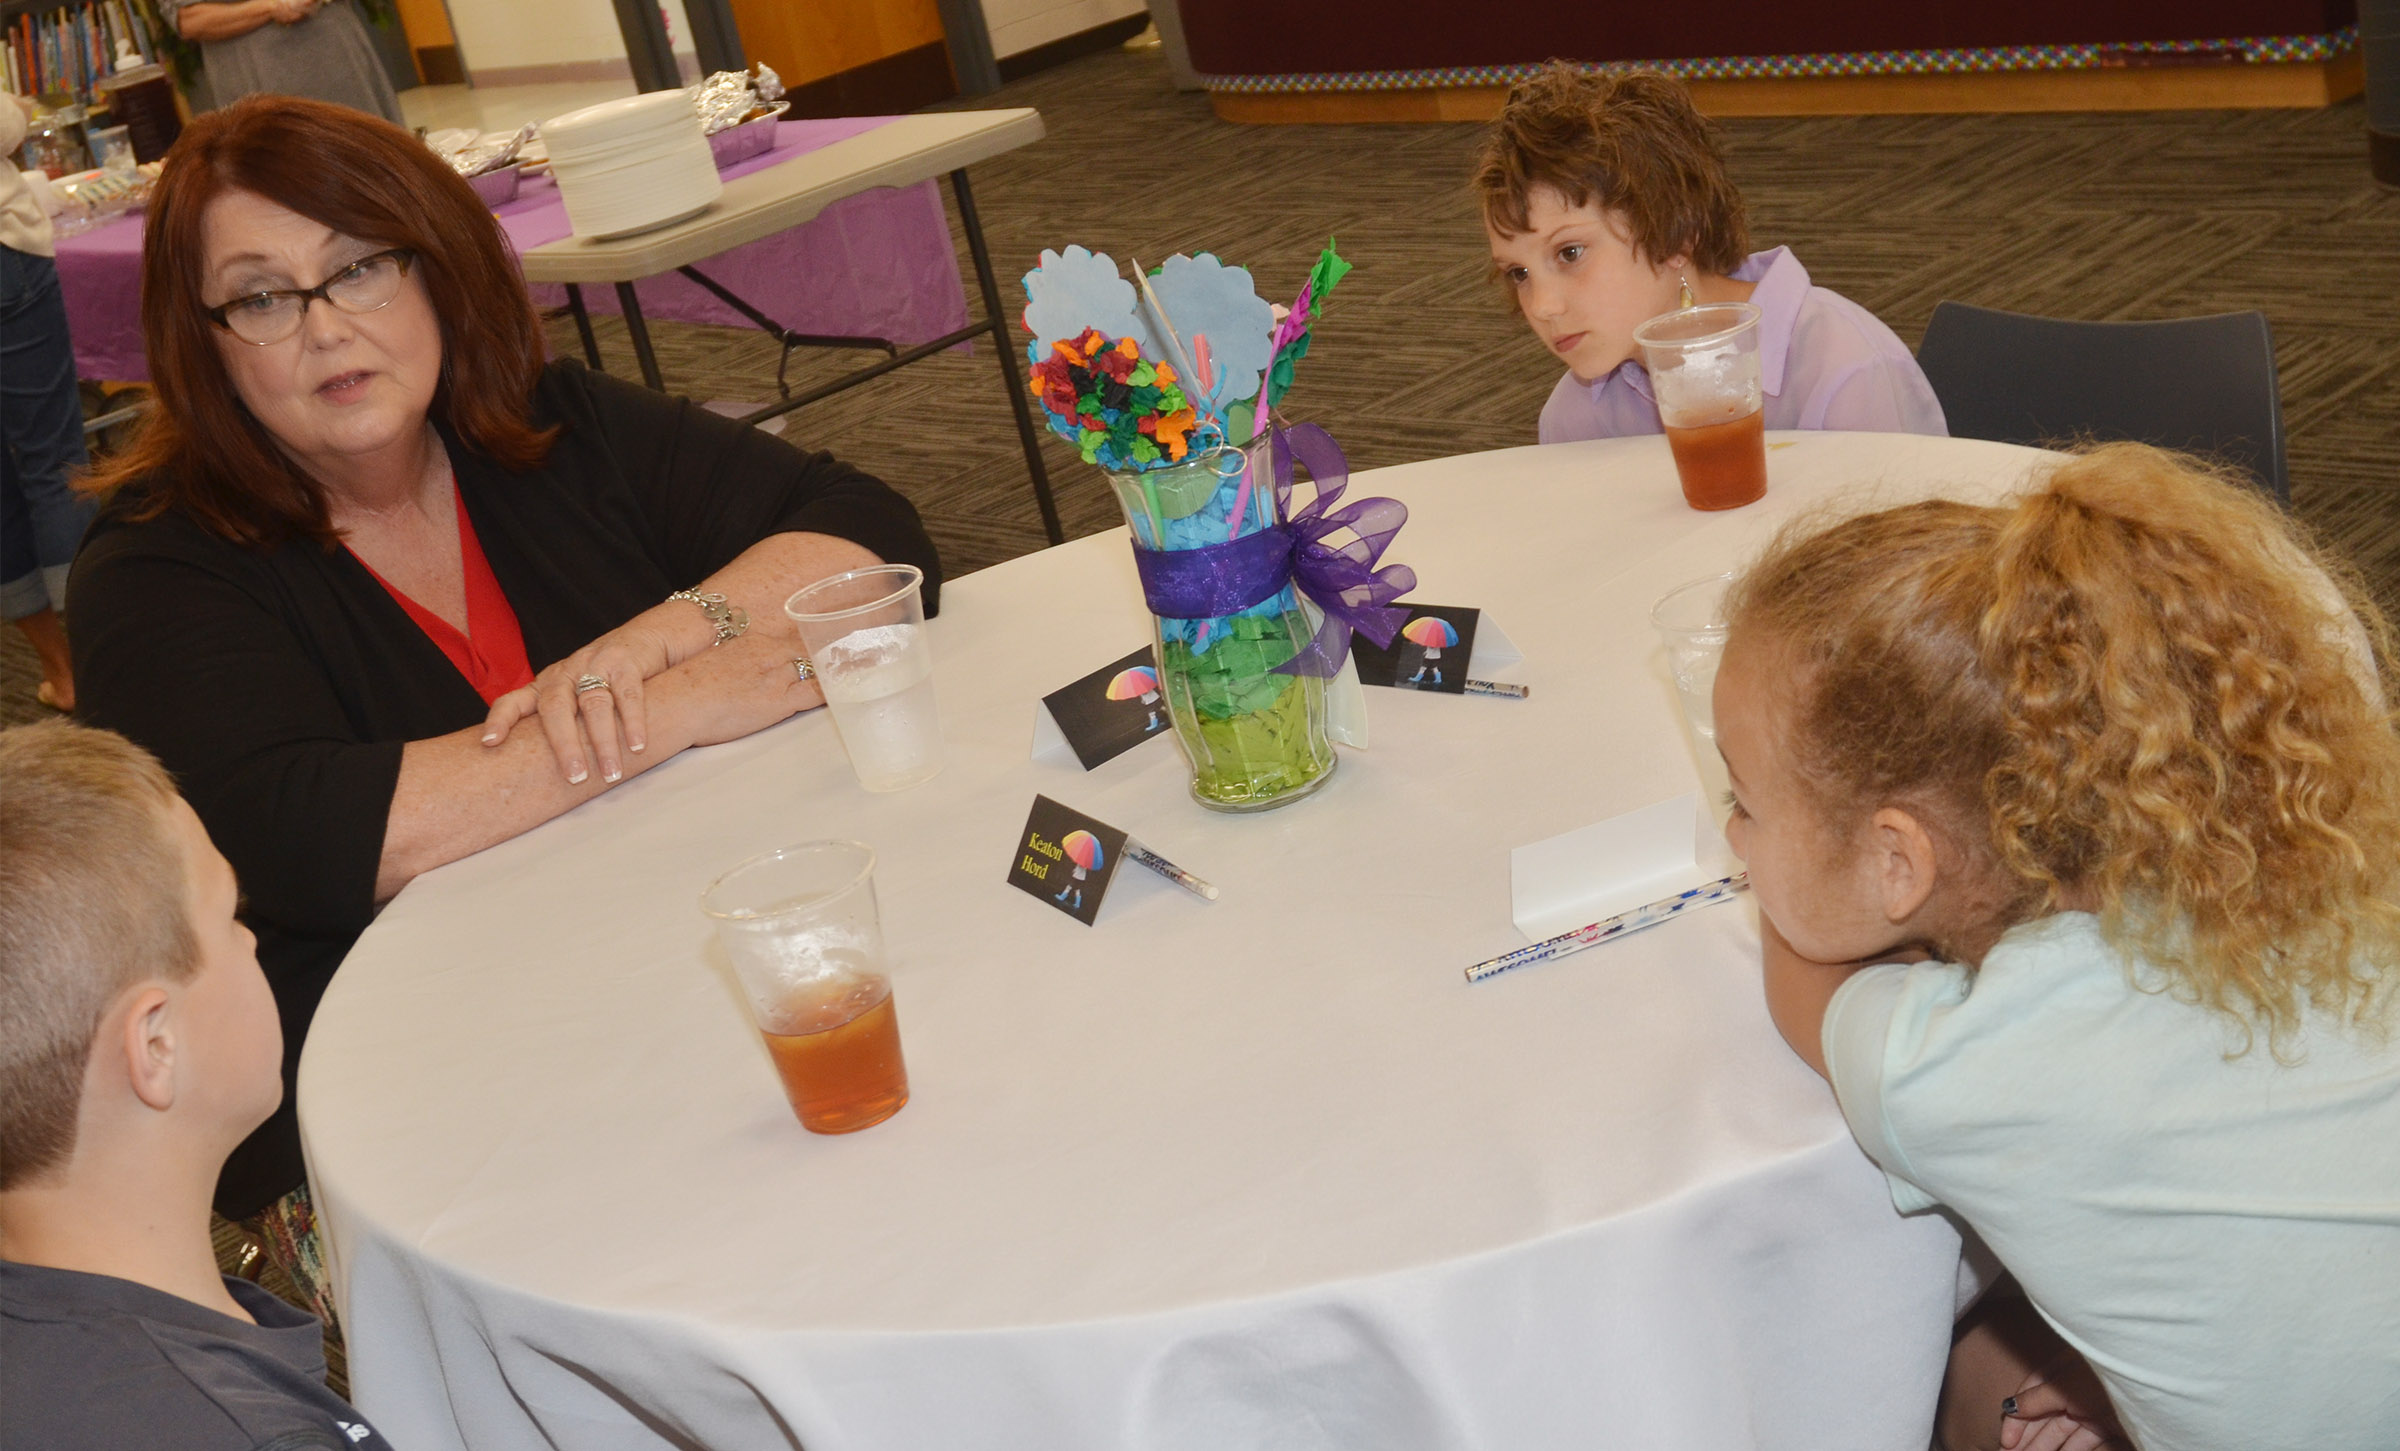 Peggy Richardson, director of counseling services at Campbellsville University, talks with, from left, CES third-grader Keaton Hord, second-grader Baylee Pike and third-grader Raelyn Dunn.